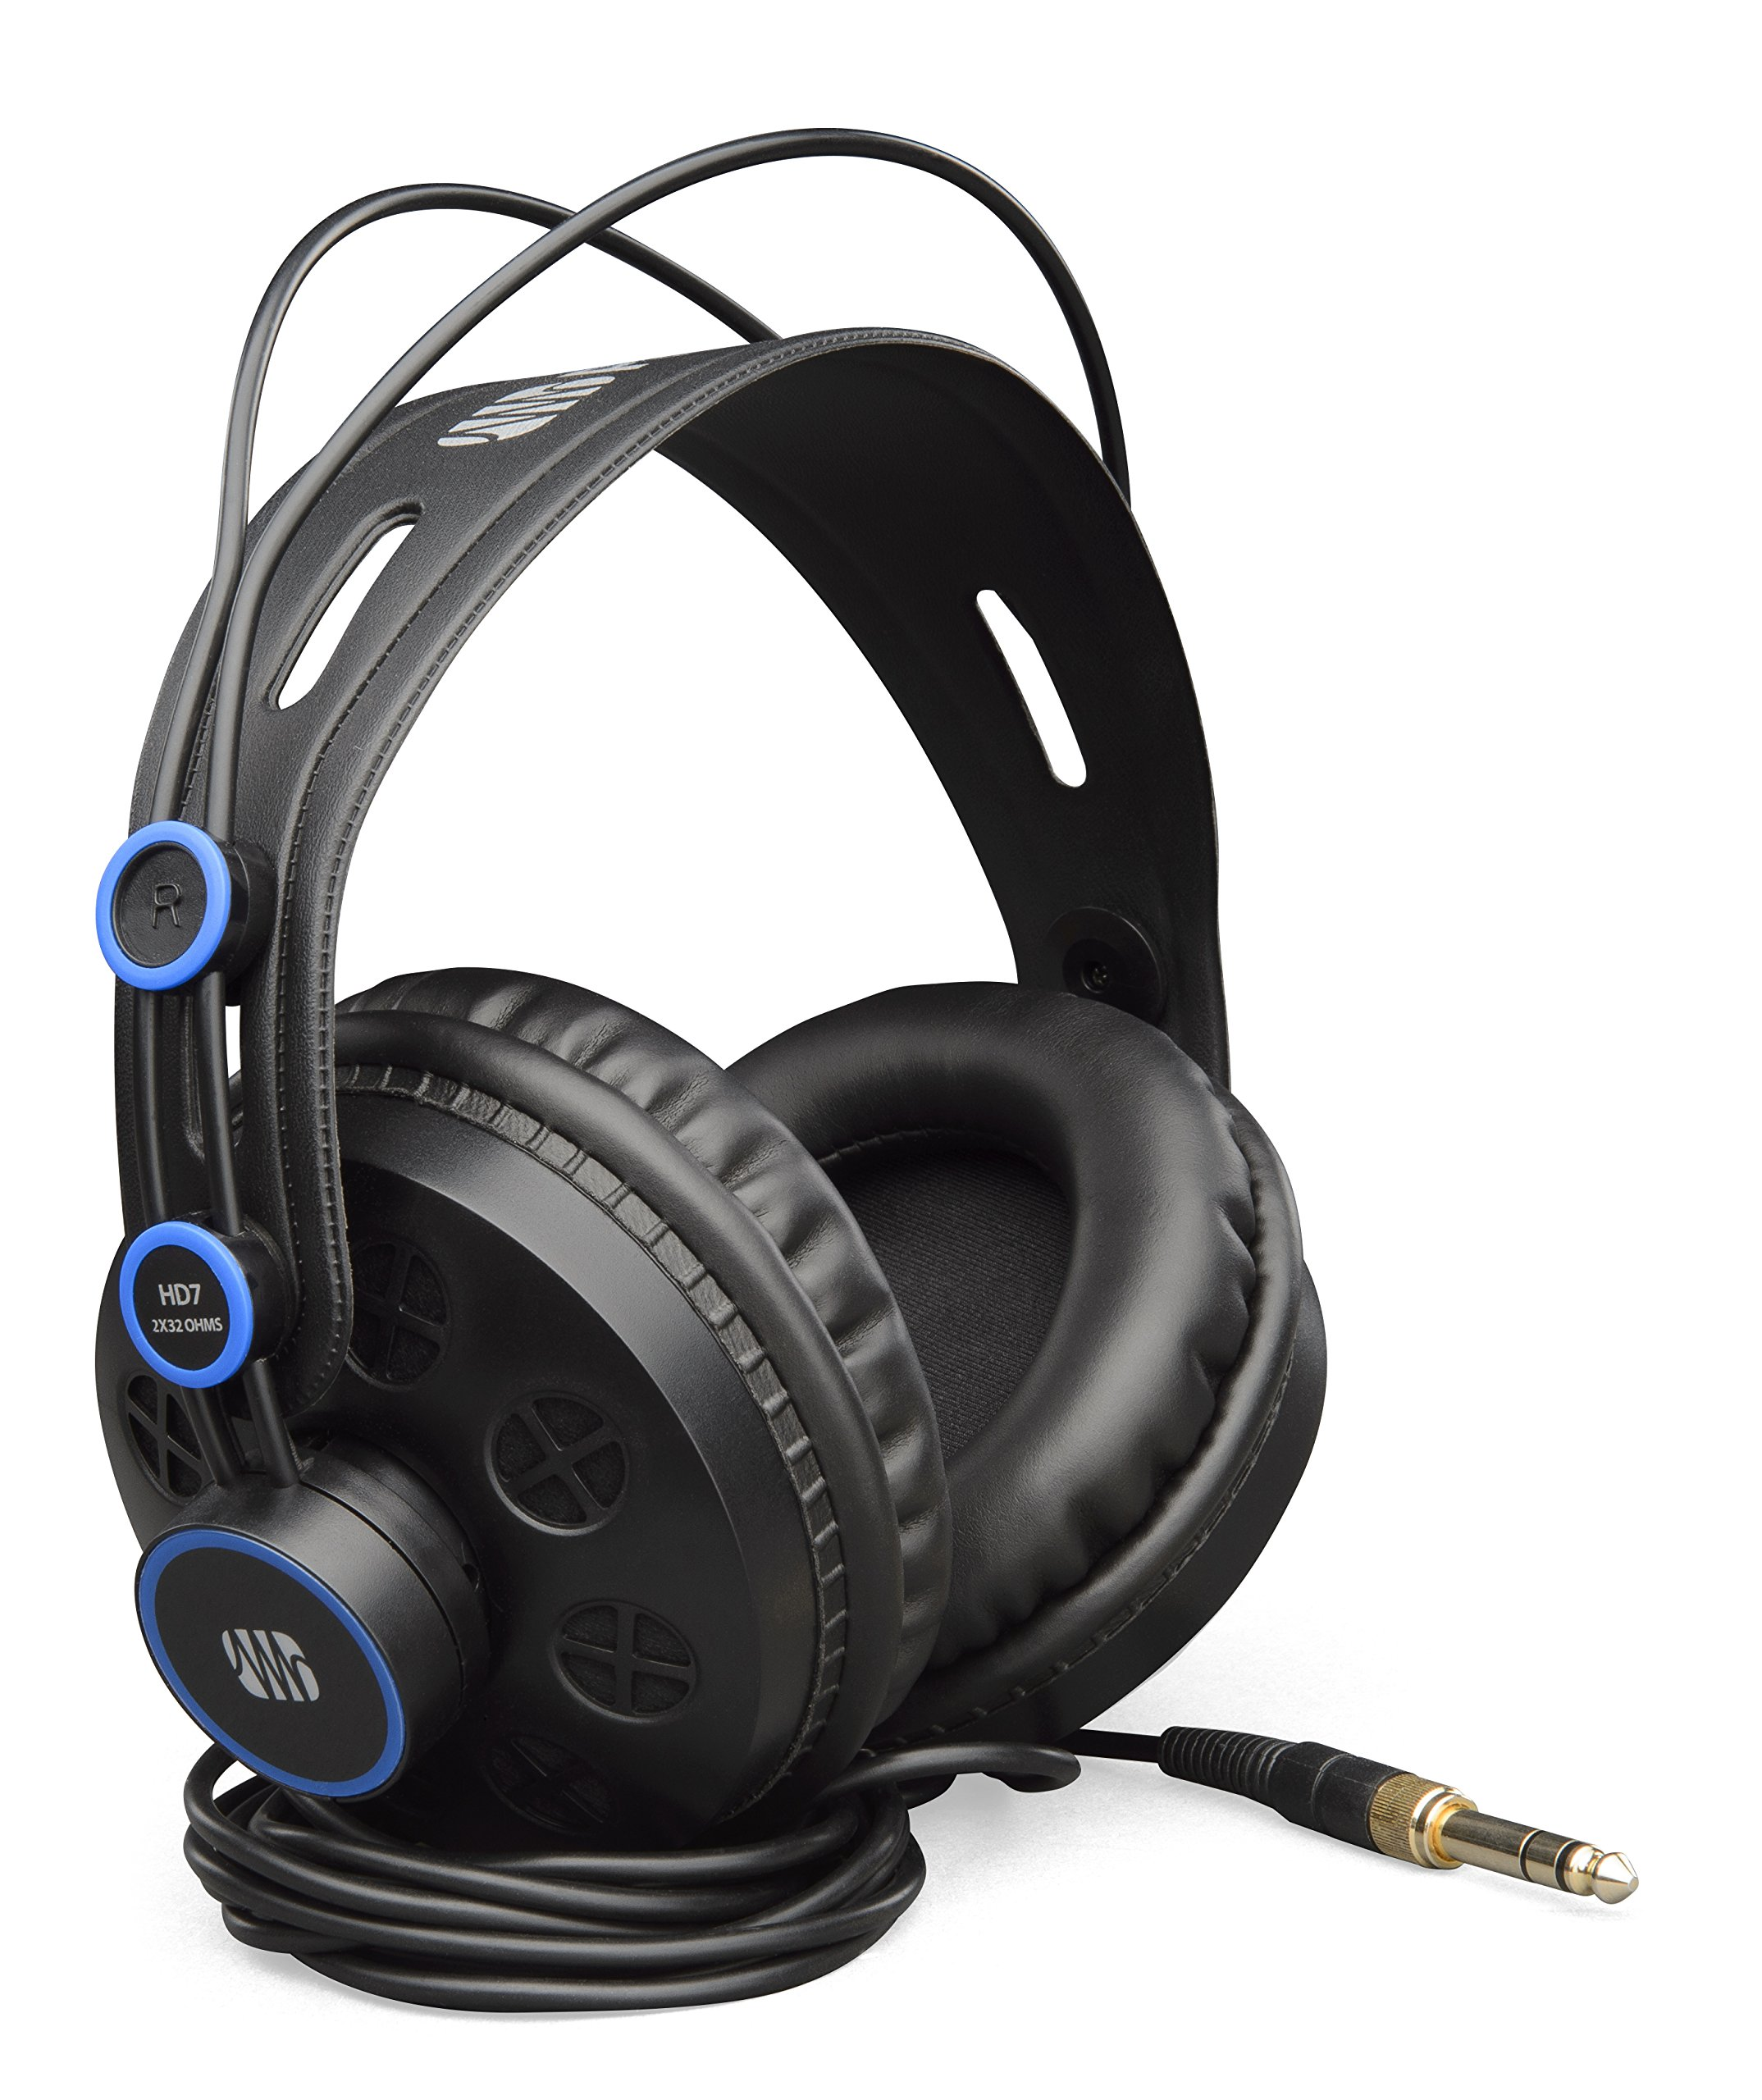 PreSonus HD7 Professional Monitoring Headphones by PreSonus